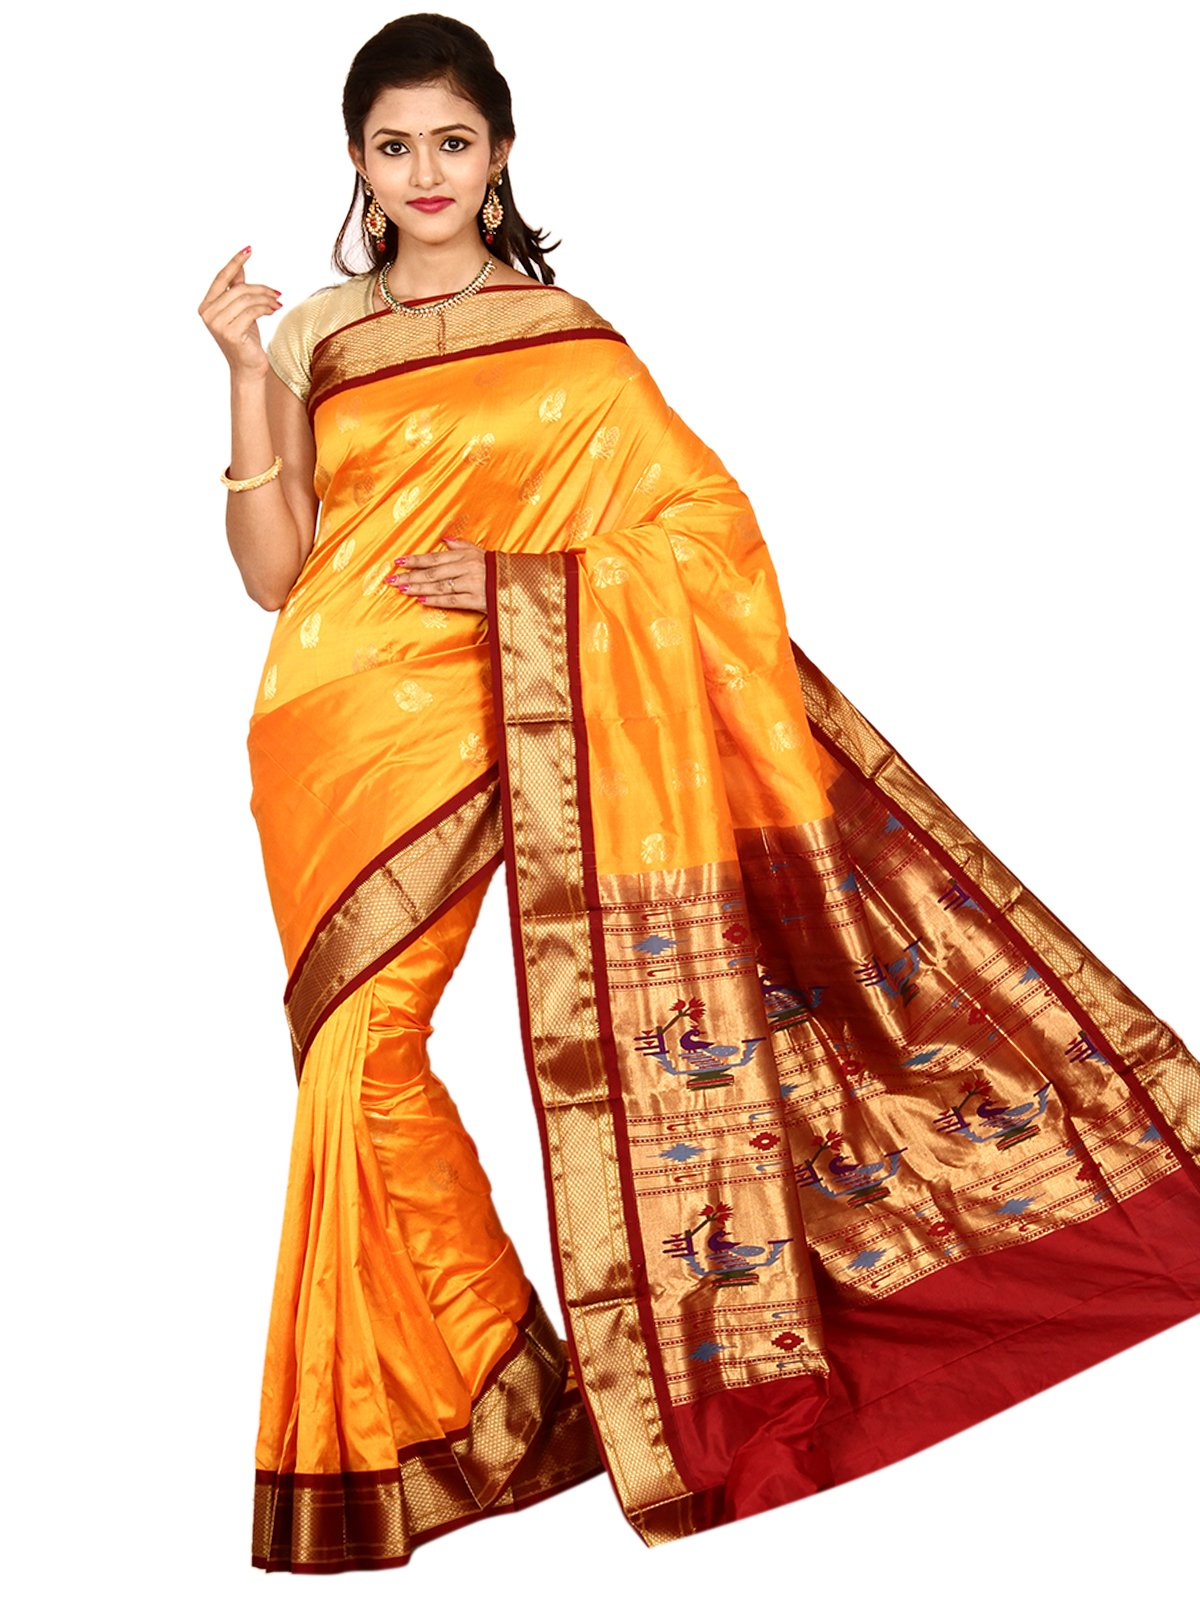 Indian Silks Peacock Design Paithani Handloom Pure Silk Saree, With Unstitched Blouse Piece (Maroon_Gold)